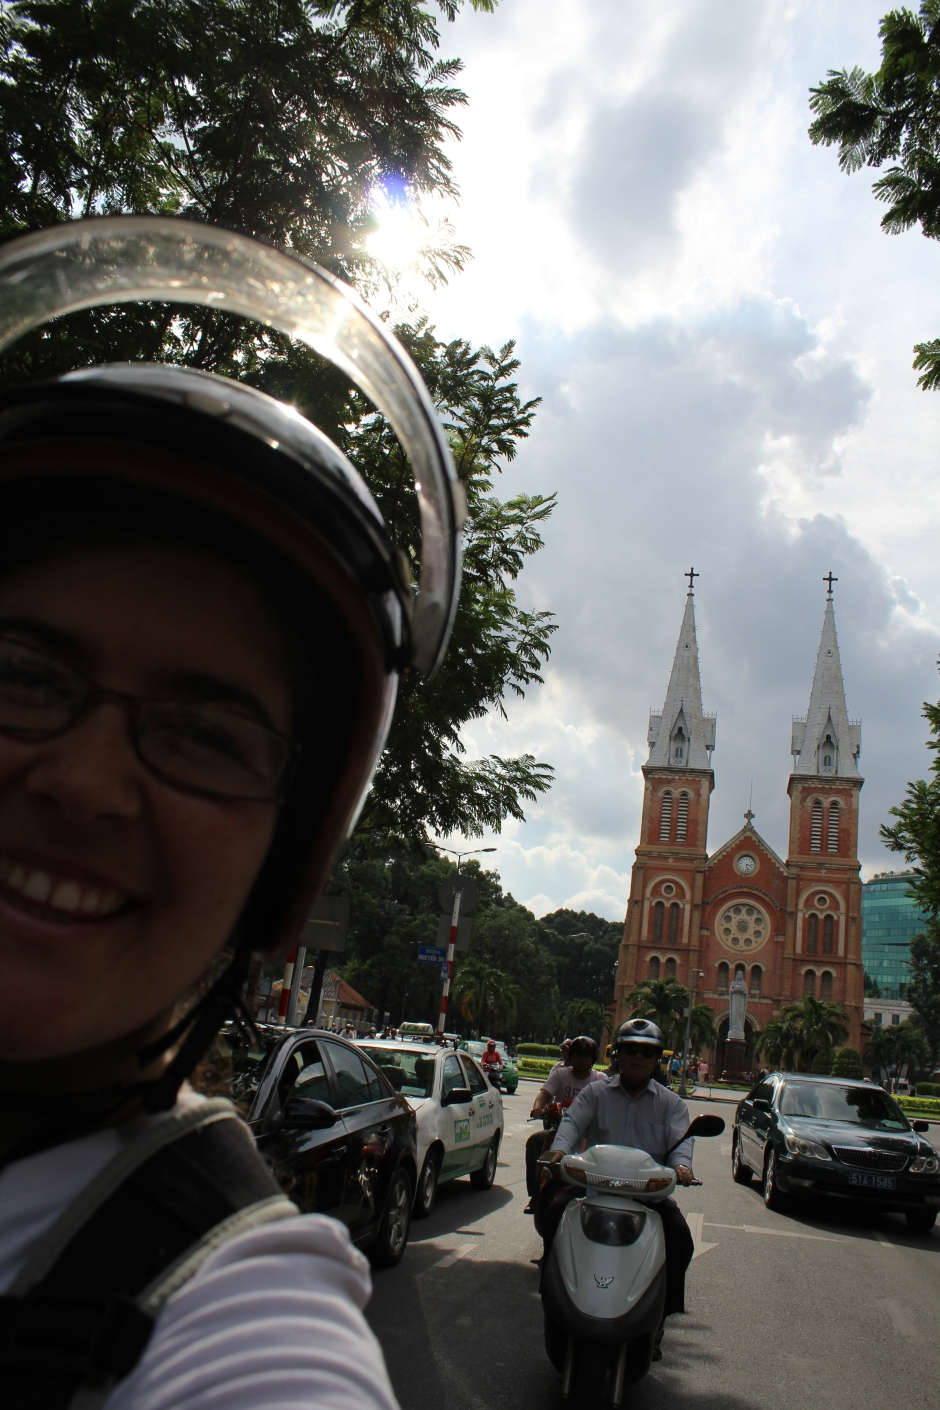 First experience on a Vietnamese motorcycle! :)